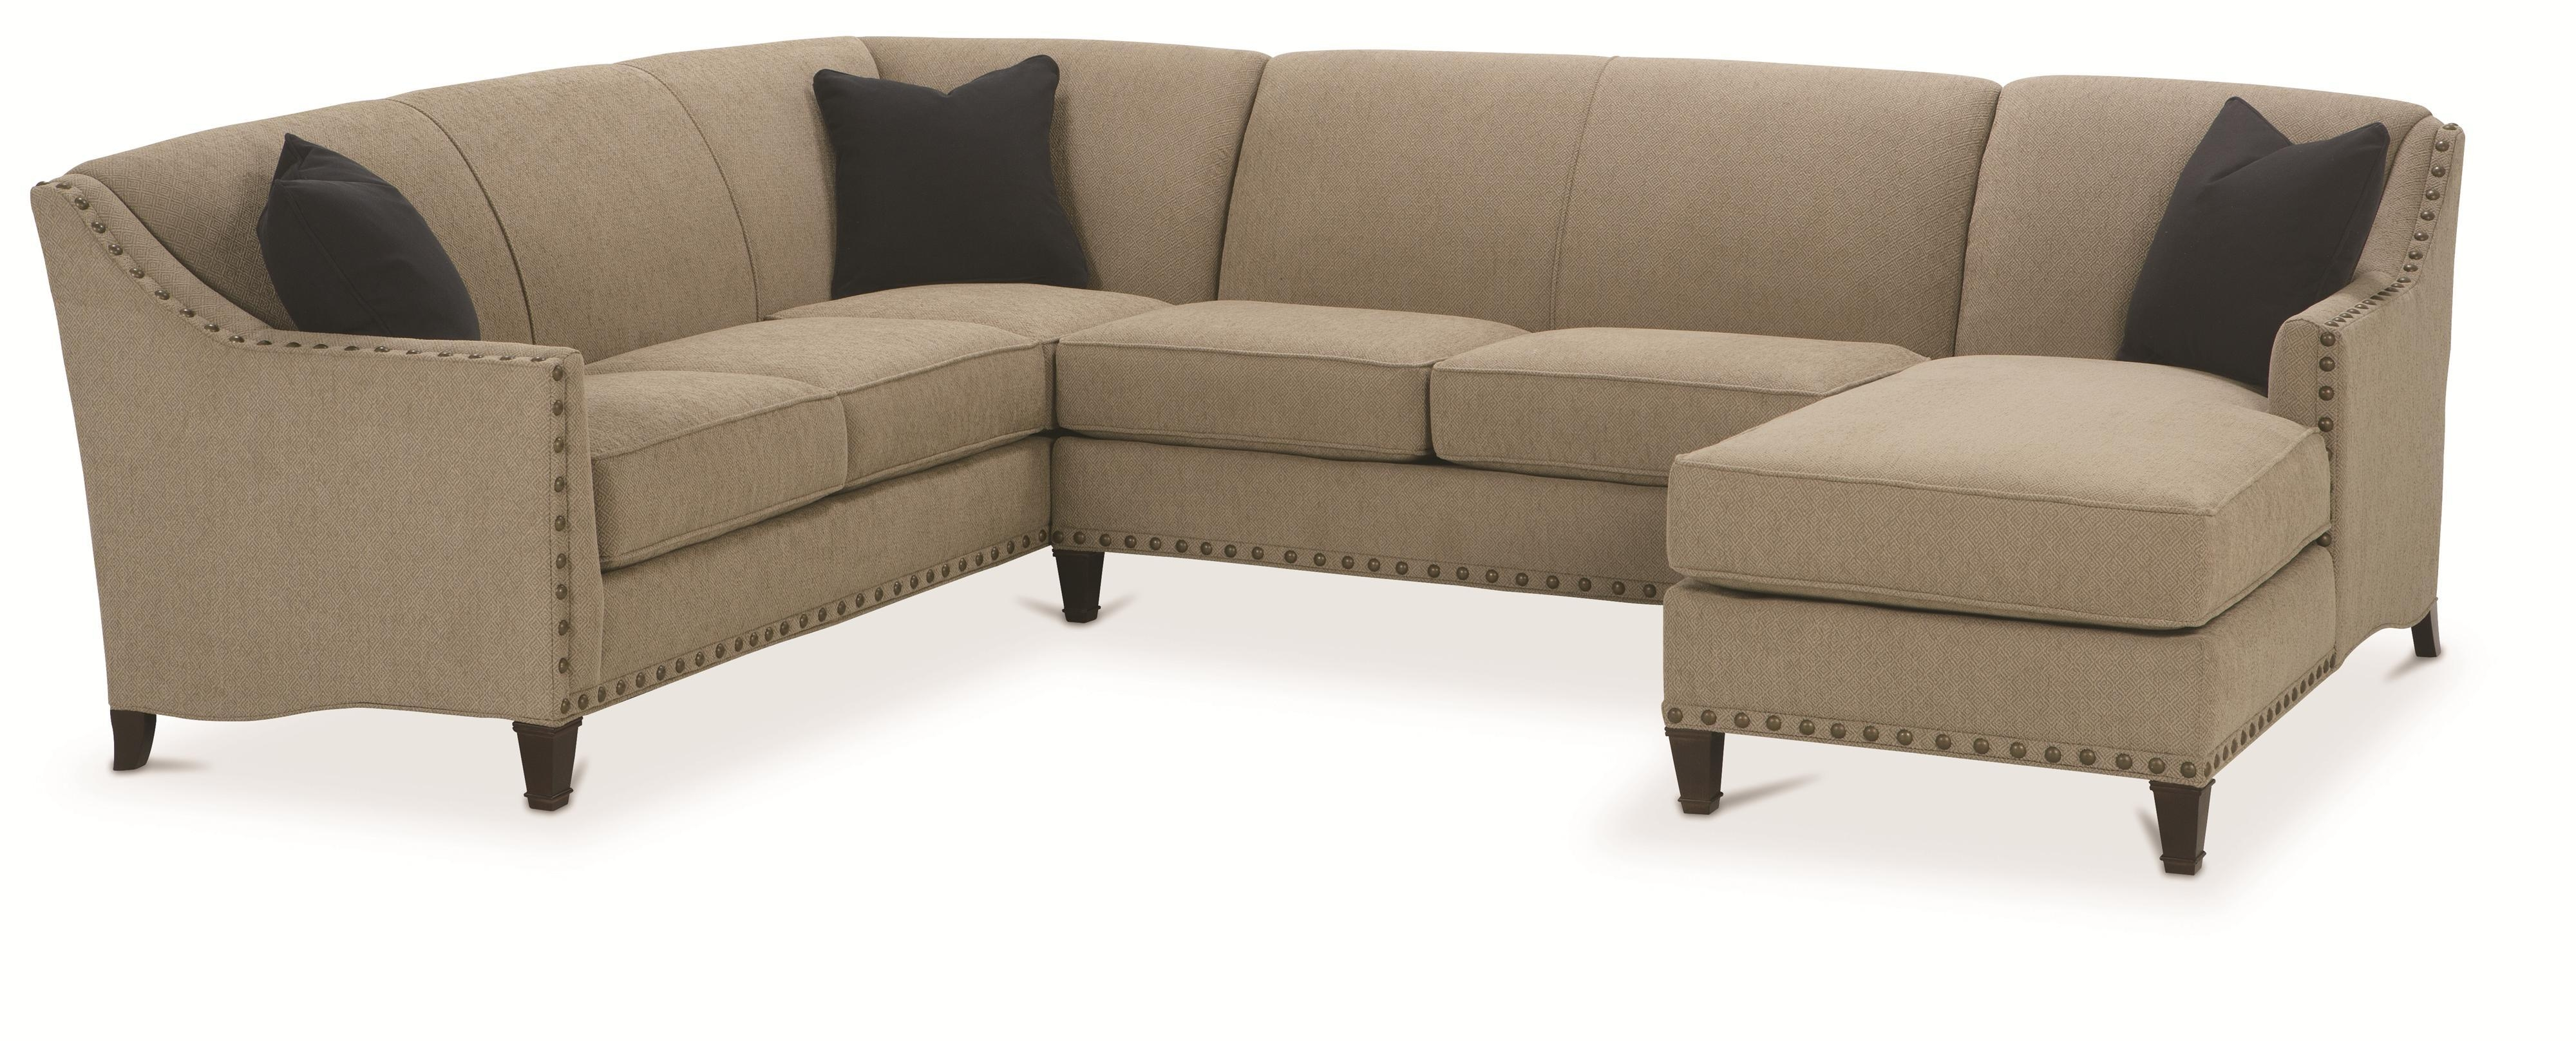 Sofas Center : 45 Beautiful Traditional Sectional Sofas Photos With Regard To Traditional Sectional Sofas (Image 10 of 20)